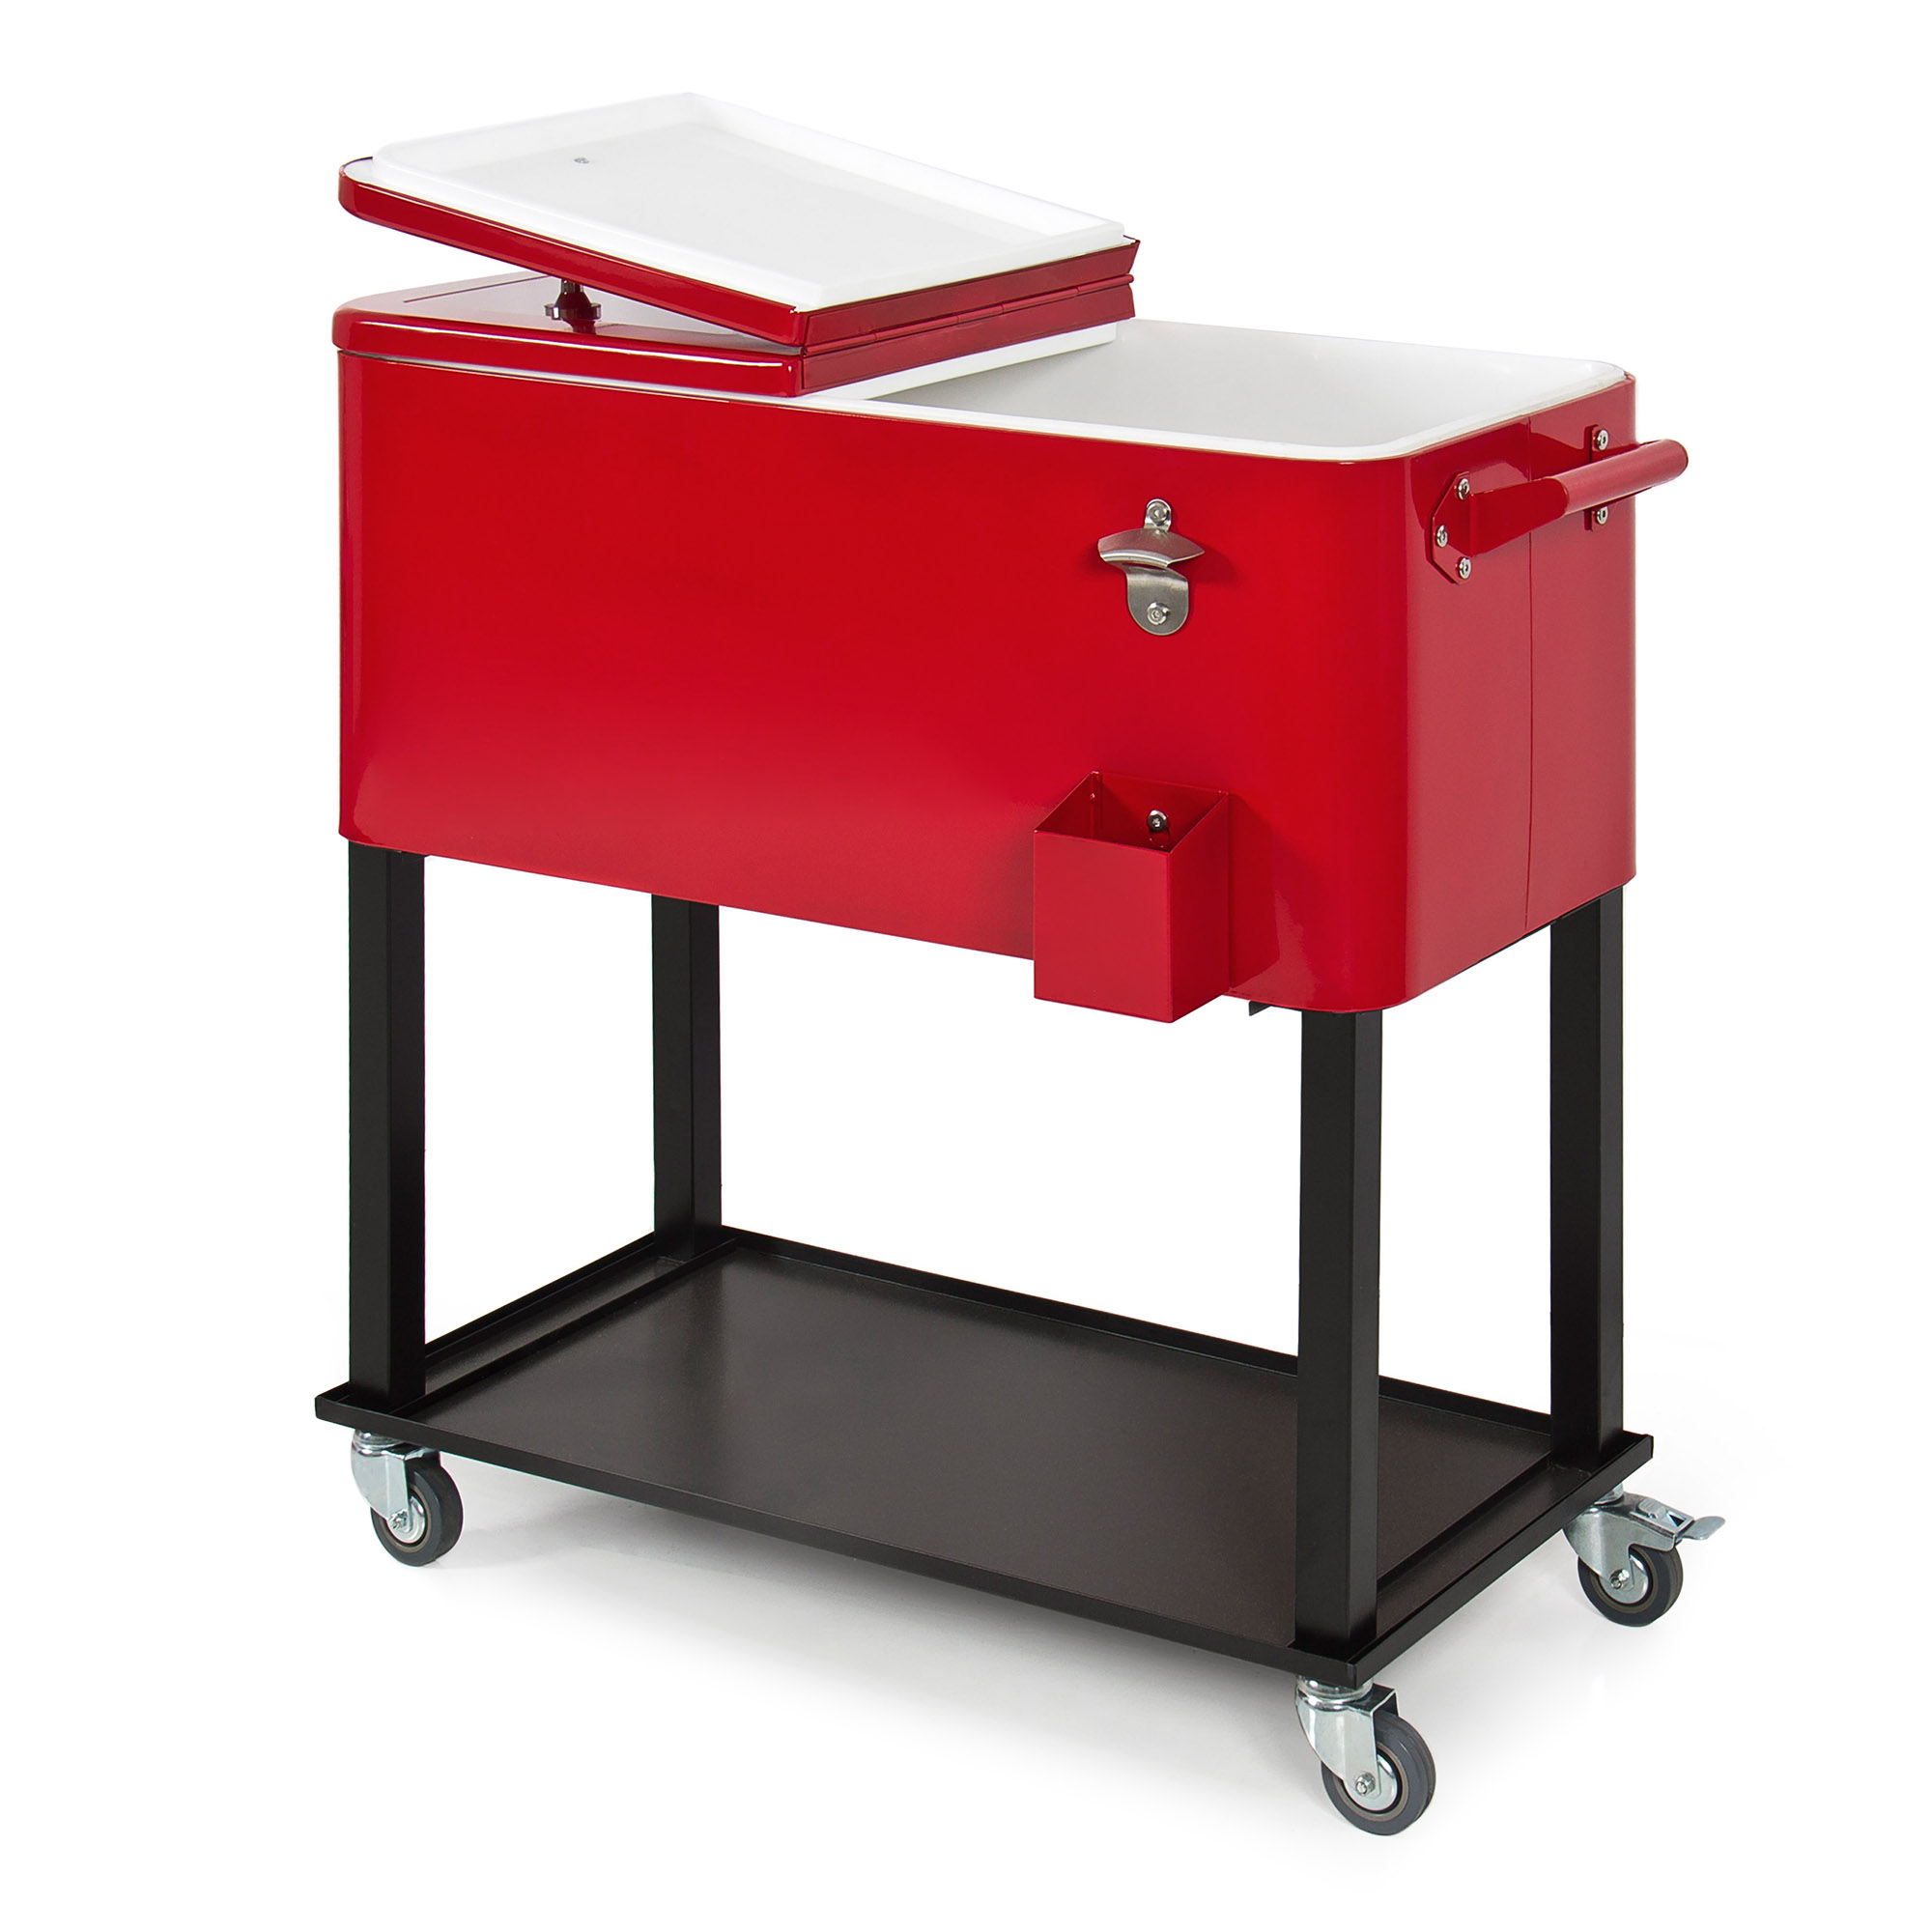 Best Choice Products 80-Quart Rolling Cooler Cart w/ Bottle Opener and Catch Tray, Drain Plug - Red